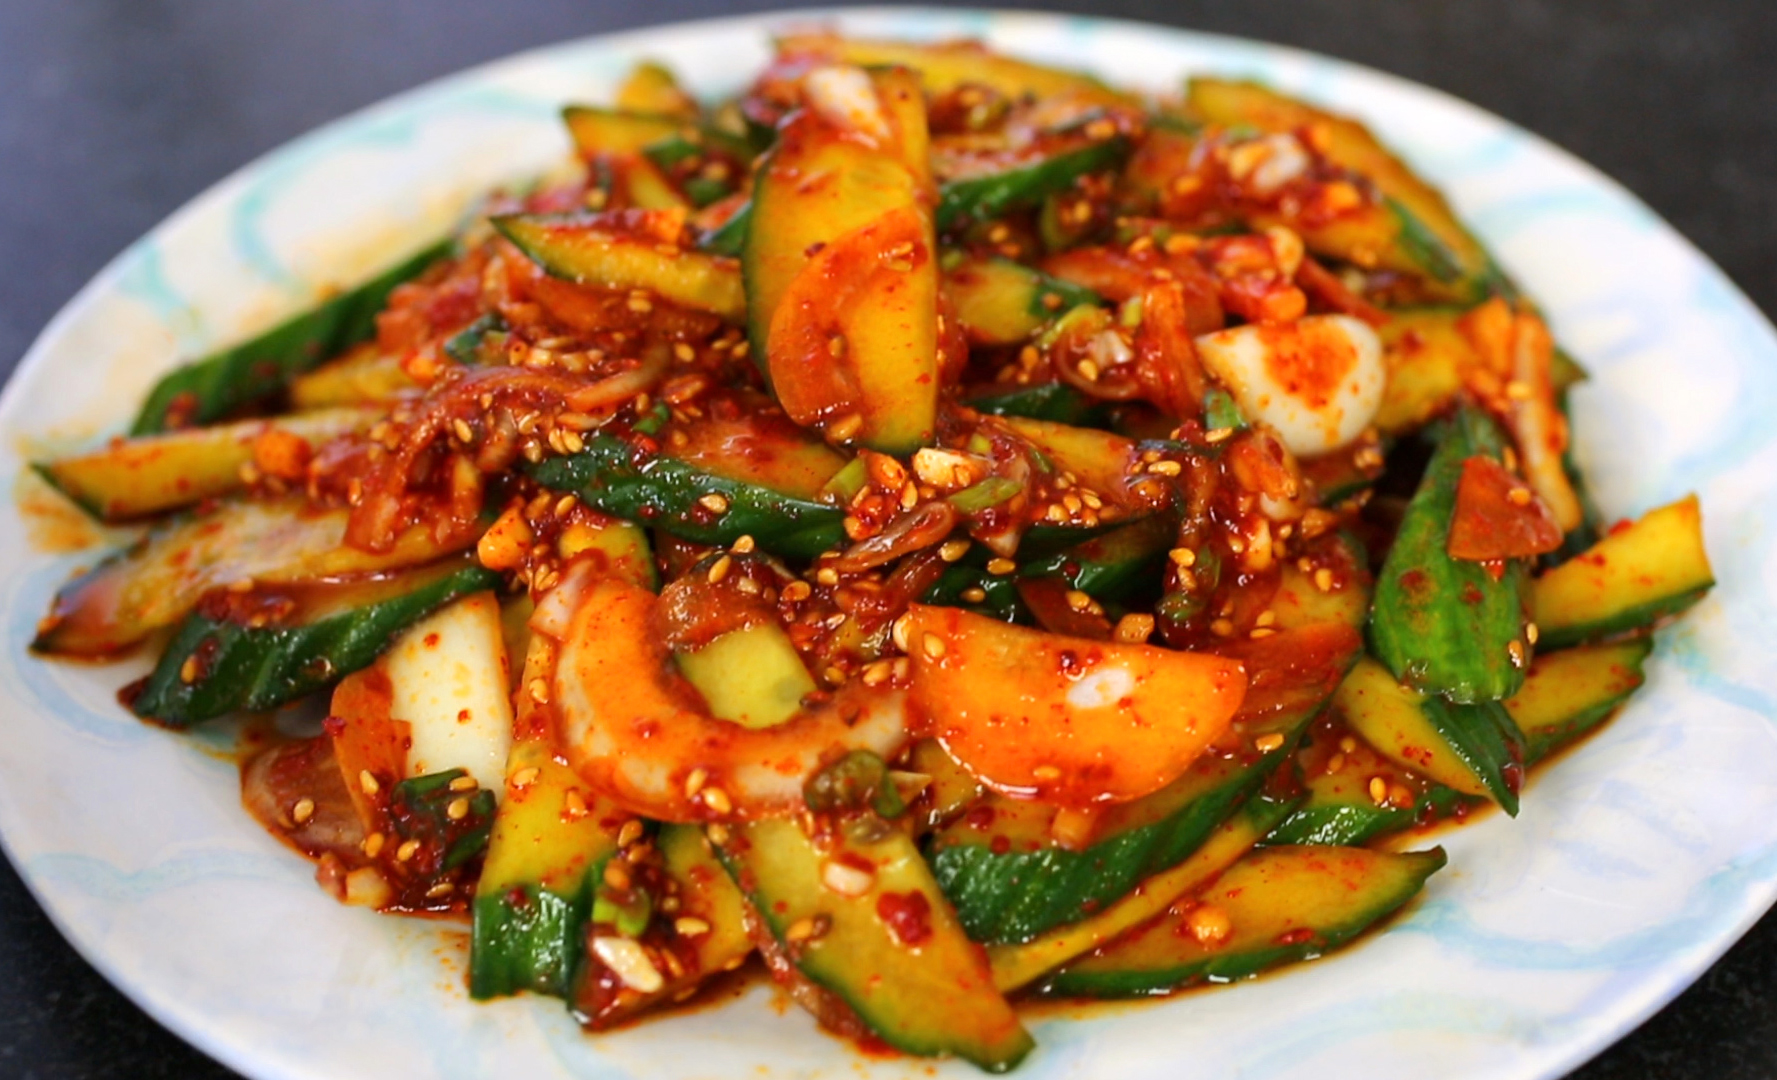 Spicy cucumber side dish recipe - Maangchi.com